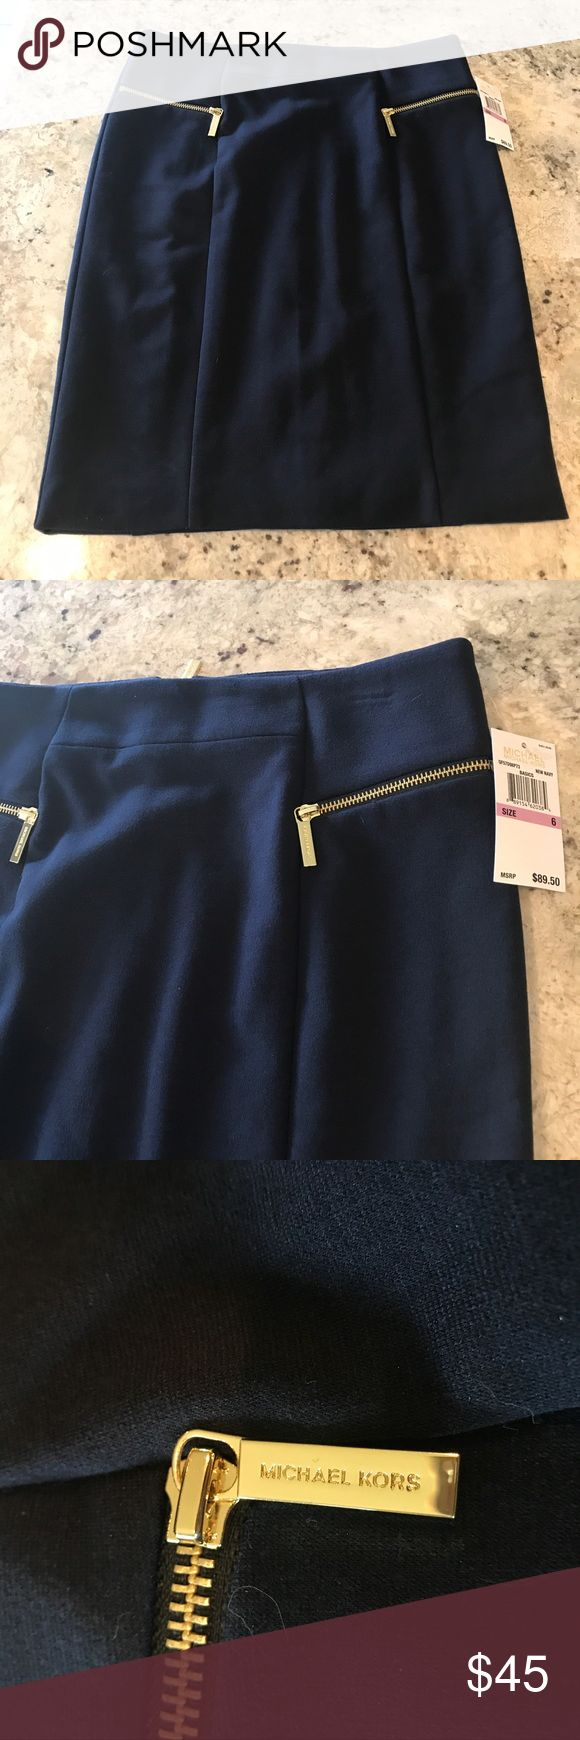 """NWT Michael Kors Navy Pencil Skirt NWT Michael Kors Navy Pencil Skirt in size 6.  Measurements: Waist 15"""", Hips 18"""", Length 21"""". This skirt has great gold details and good stretch to it!   ......................... 🚫 - No Trades! 🚭 - listings from a non-smoking home 📬 - fast shipping 💌 - Feel free to make an offer!  💯 - items as described, feel free to ask questions  🔍 - search my closet for other great listings! 🛍 - Happy Shopping! MICHAEL Michael Kors Skirts Pencil"""